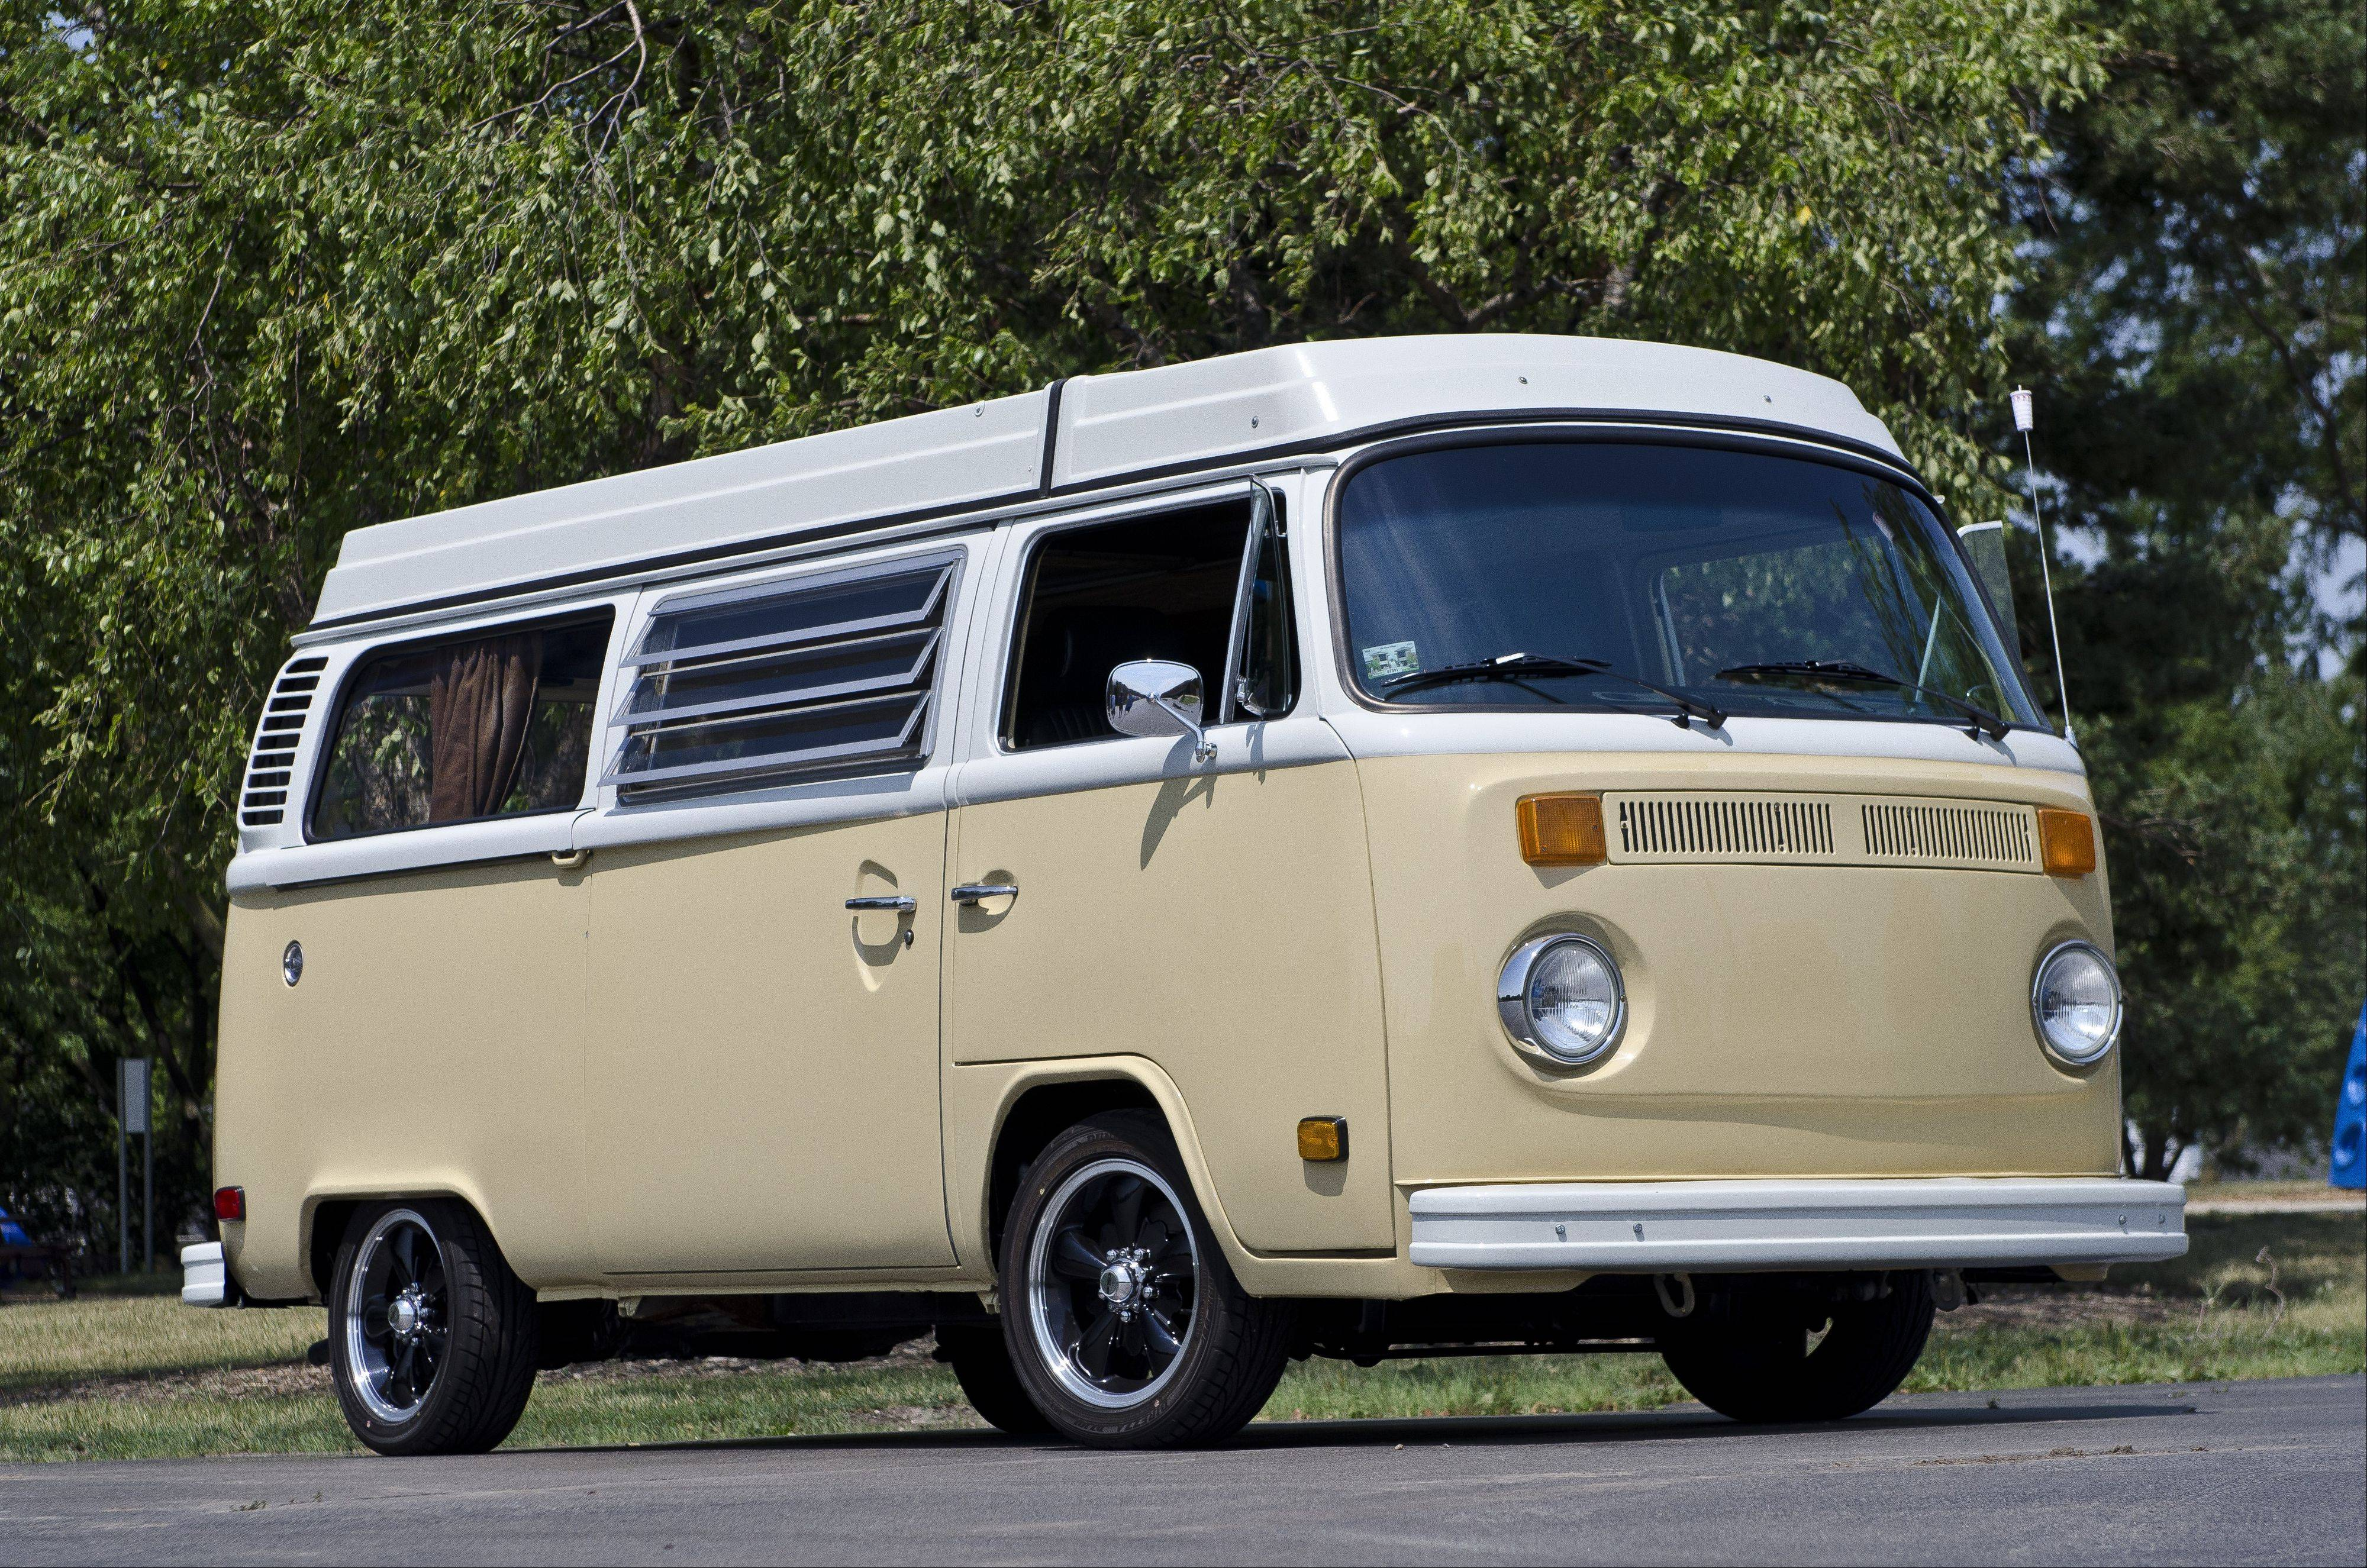 VW bus turned into a family van - DailyHerald.com